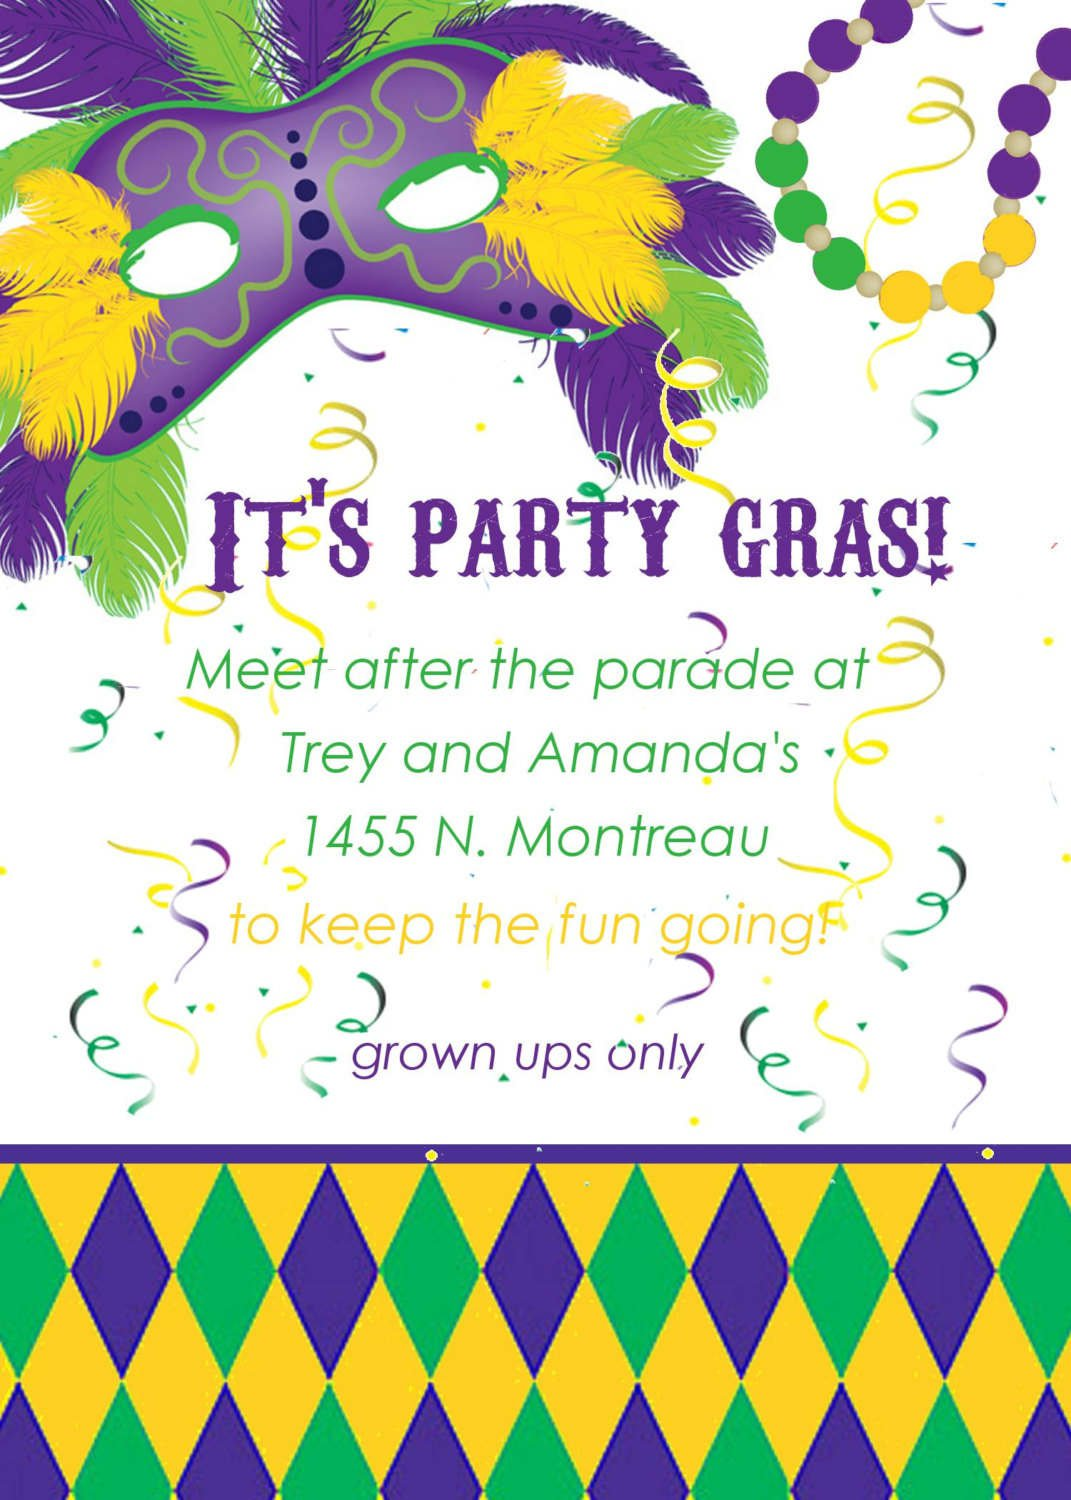 mardi gras invitations - gse.bookbinder.co, Powerpoint templates